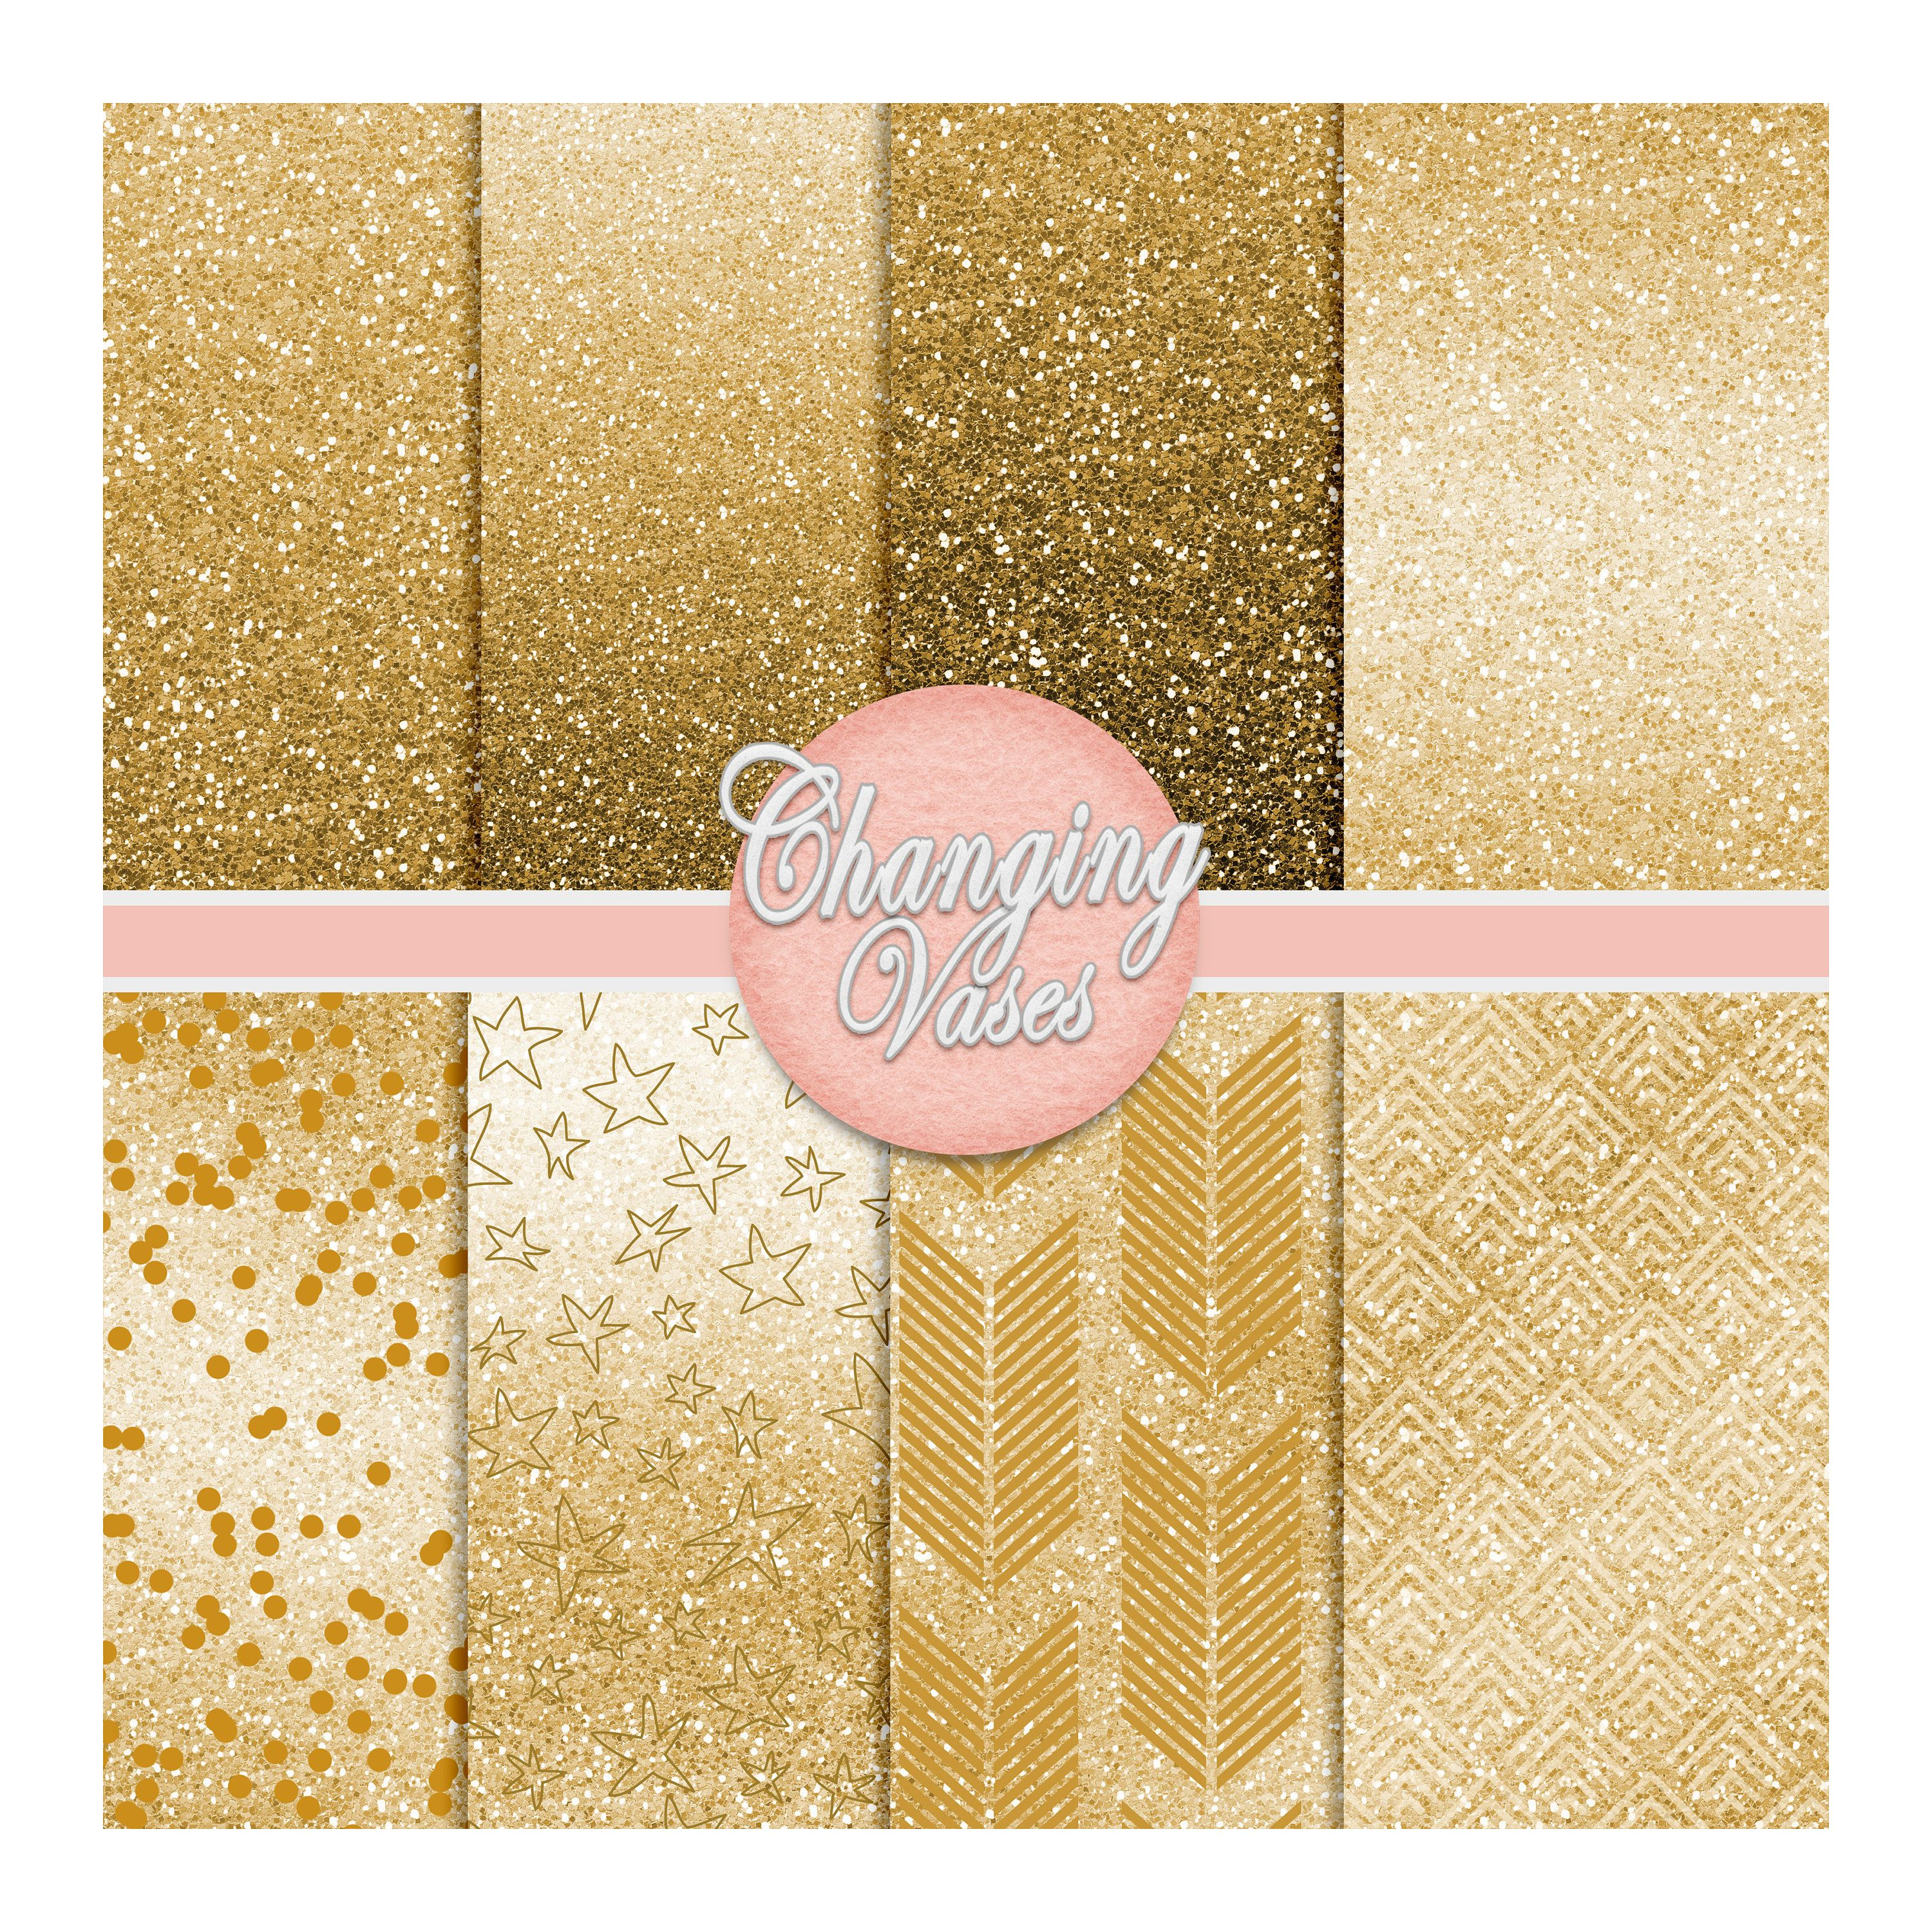 Digital Scrapbook Paper Pack Golden Glitter, Gold Glitter Pattern, Instant Download Graphic Texture, Clipart Clip Art, Photo Background